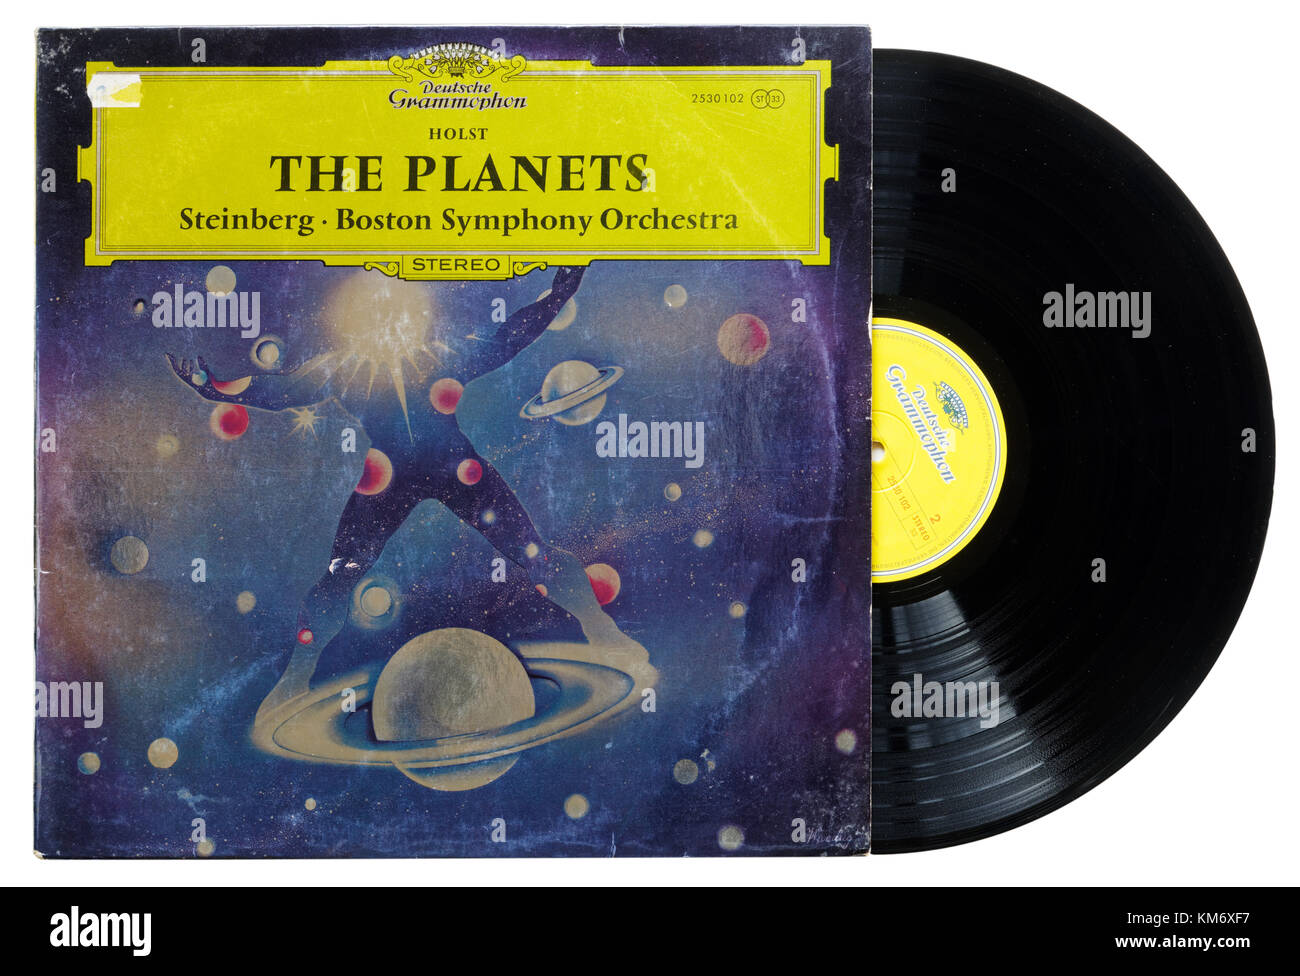 Gutav Holst The Planets album, with the Boston Symphony Orchestra - Stock Image